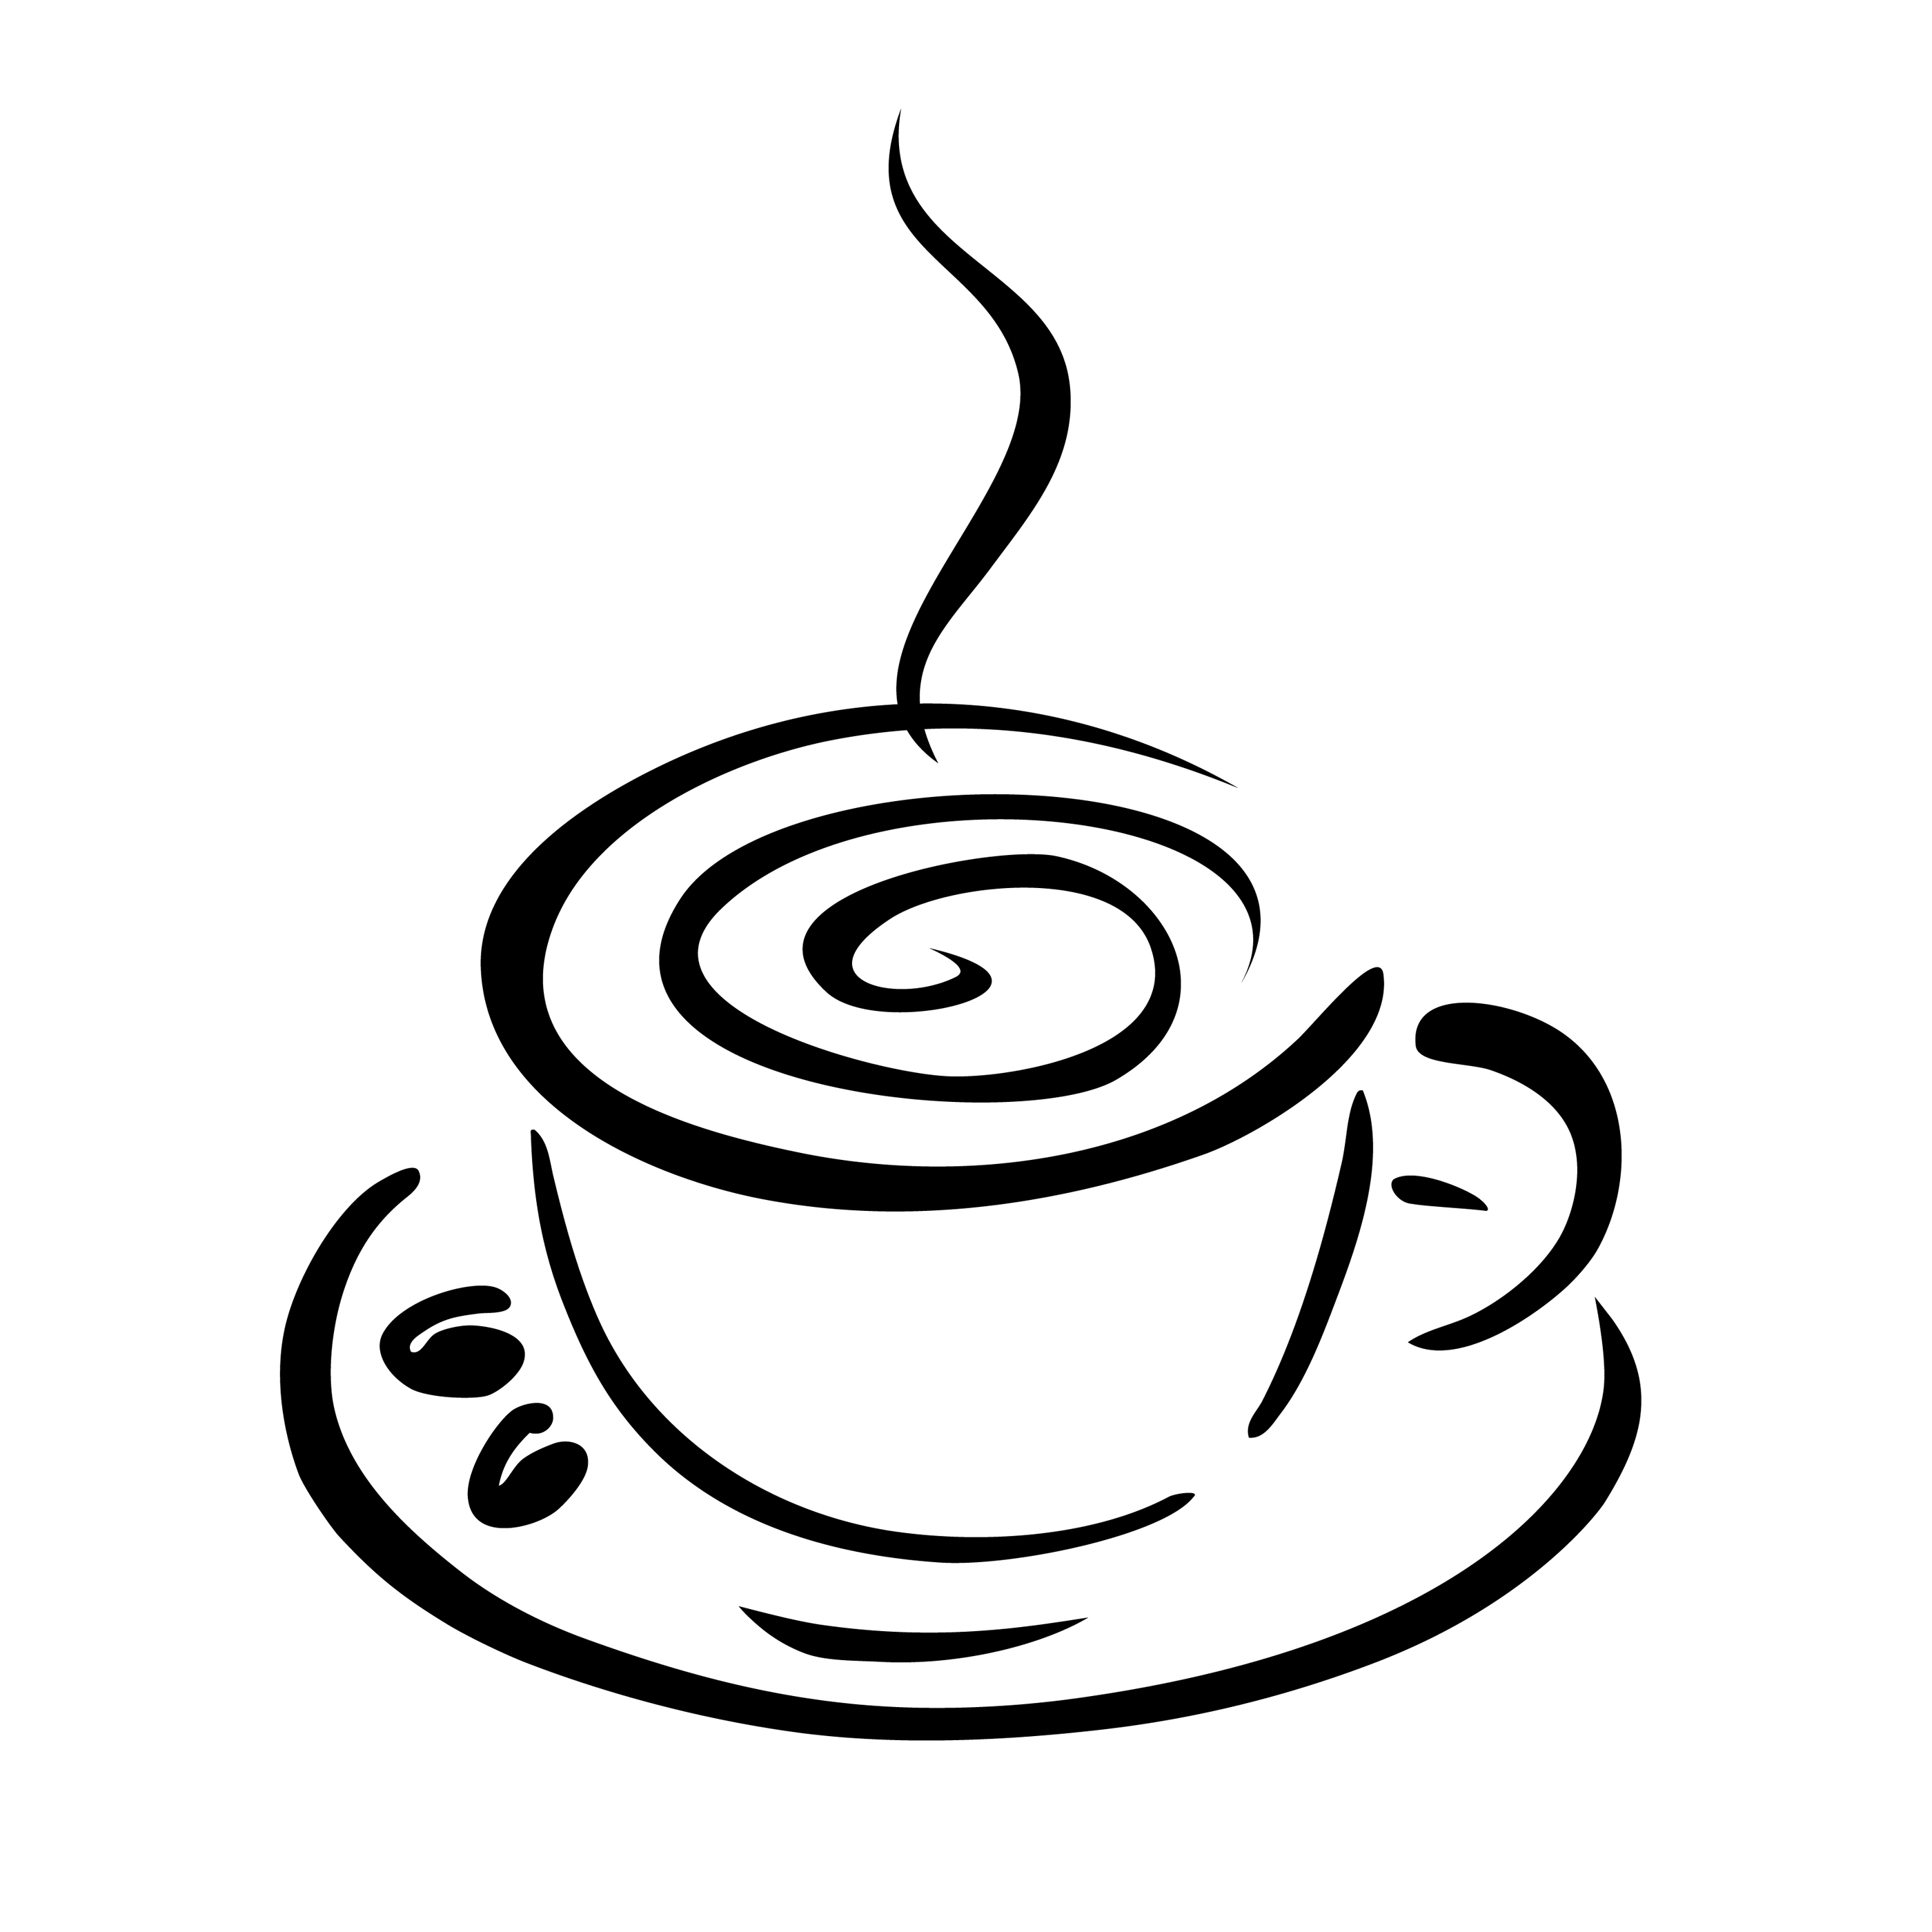 Coffee Cup Clip Art Black .-Coffee Cup Clip Art Black .-5